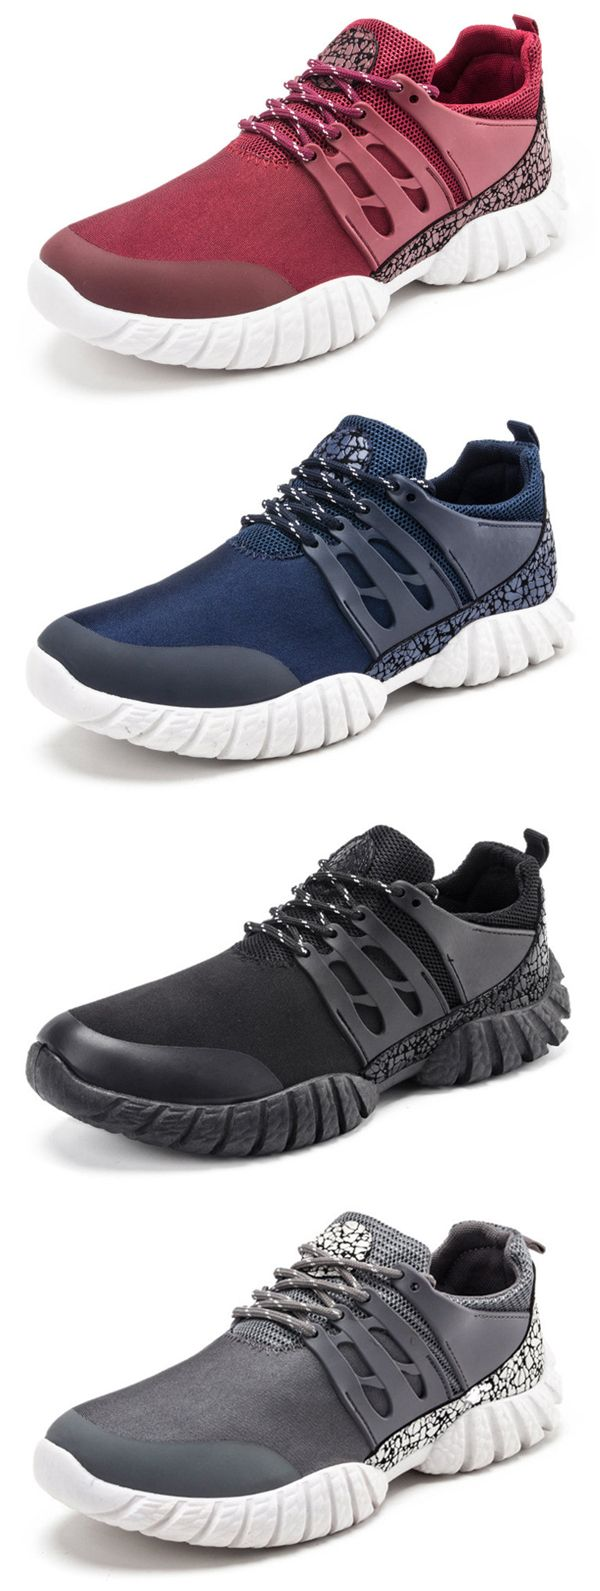 Men Breathable Light Weight Sport Running Sneakers is part of Clothes Mens Sport - Visit Newchic to receive your new user US$60 gift! Get free shipping and a 14 days return or refund guarantee  @Newchic, your first choice for online shopping